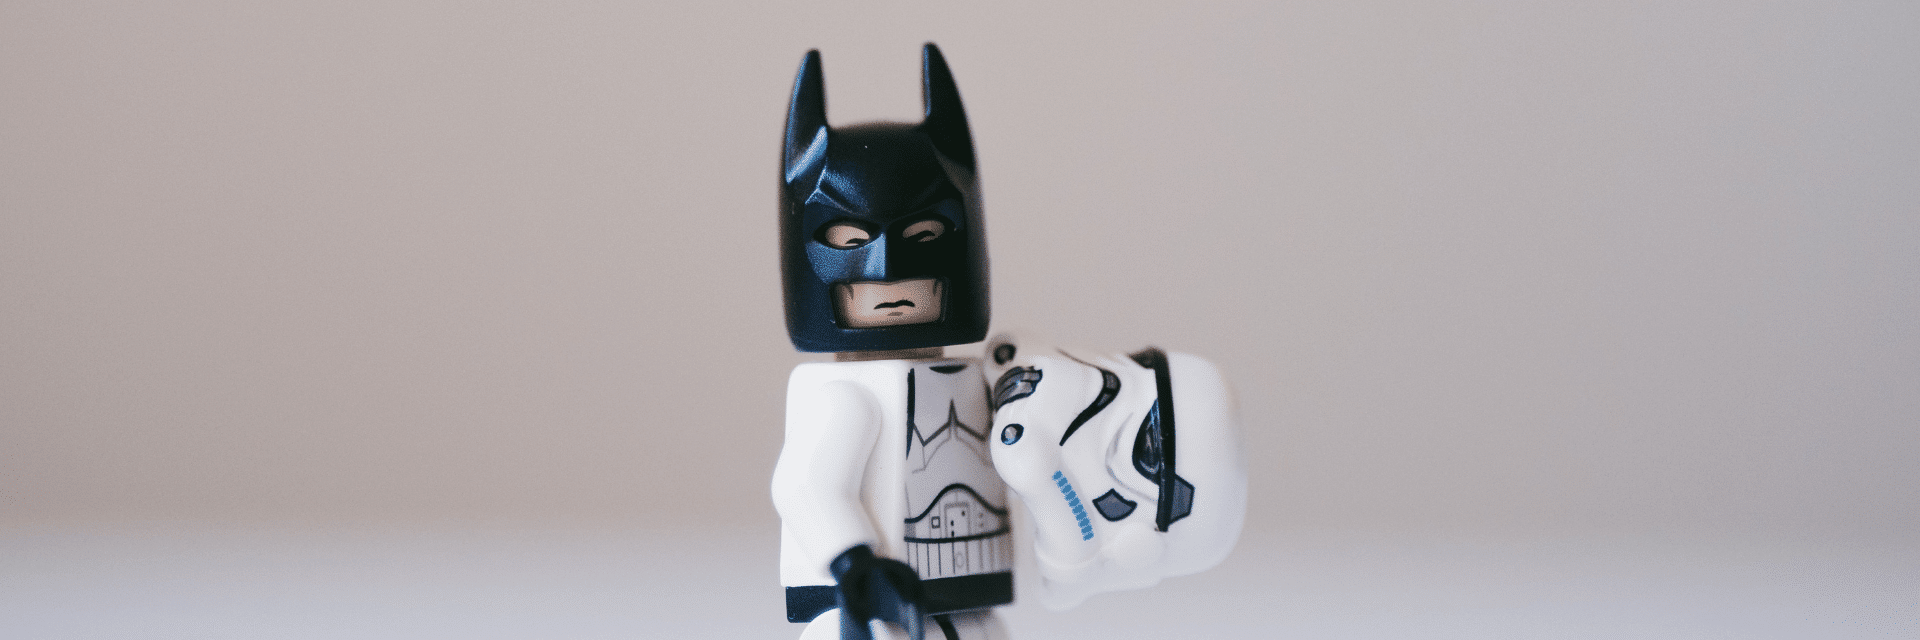 A lego Stormtrooper, holding his helmet in one hand revealing that he's actually Batman.